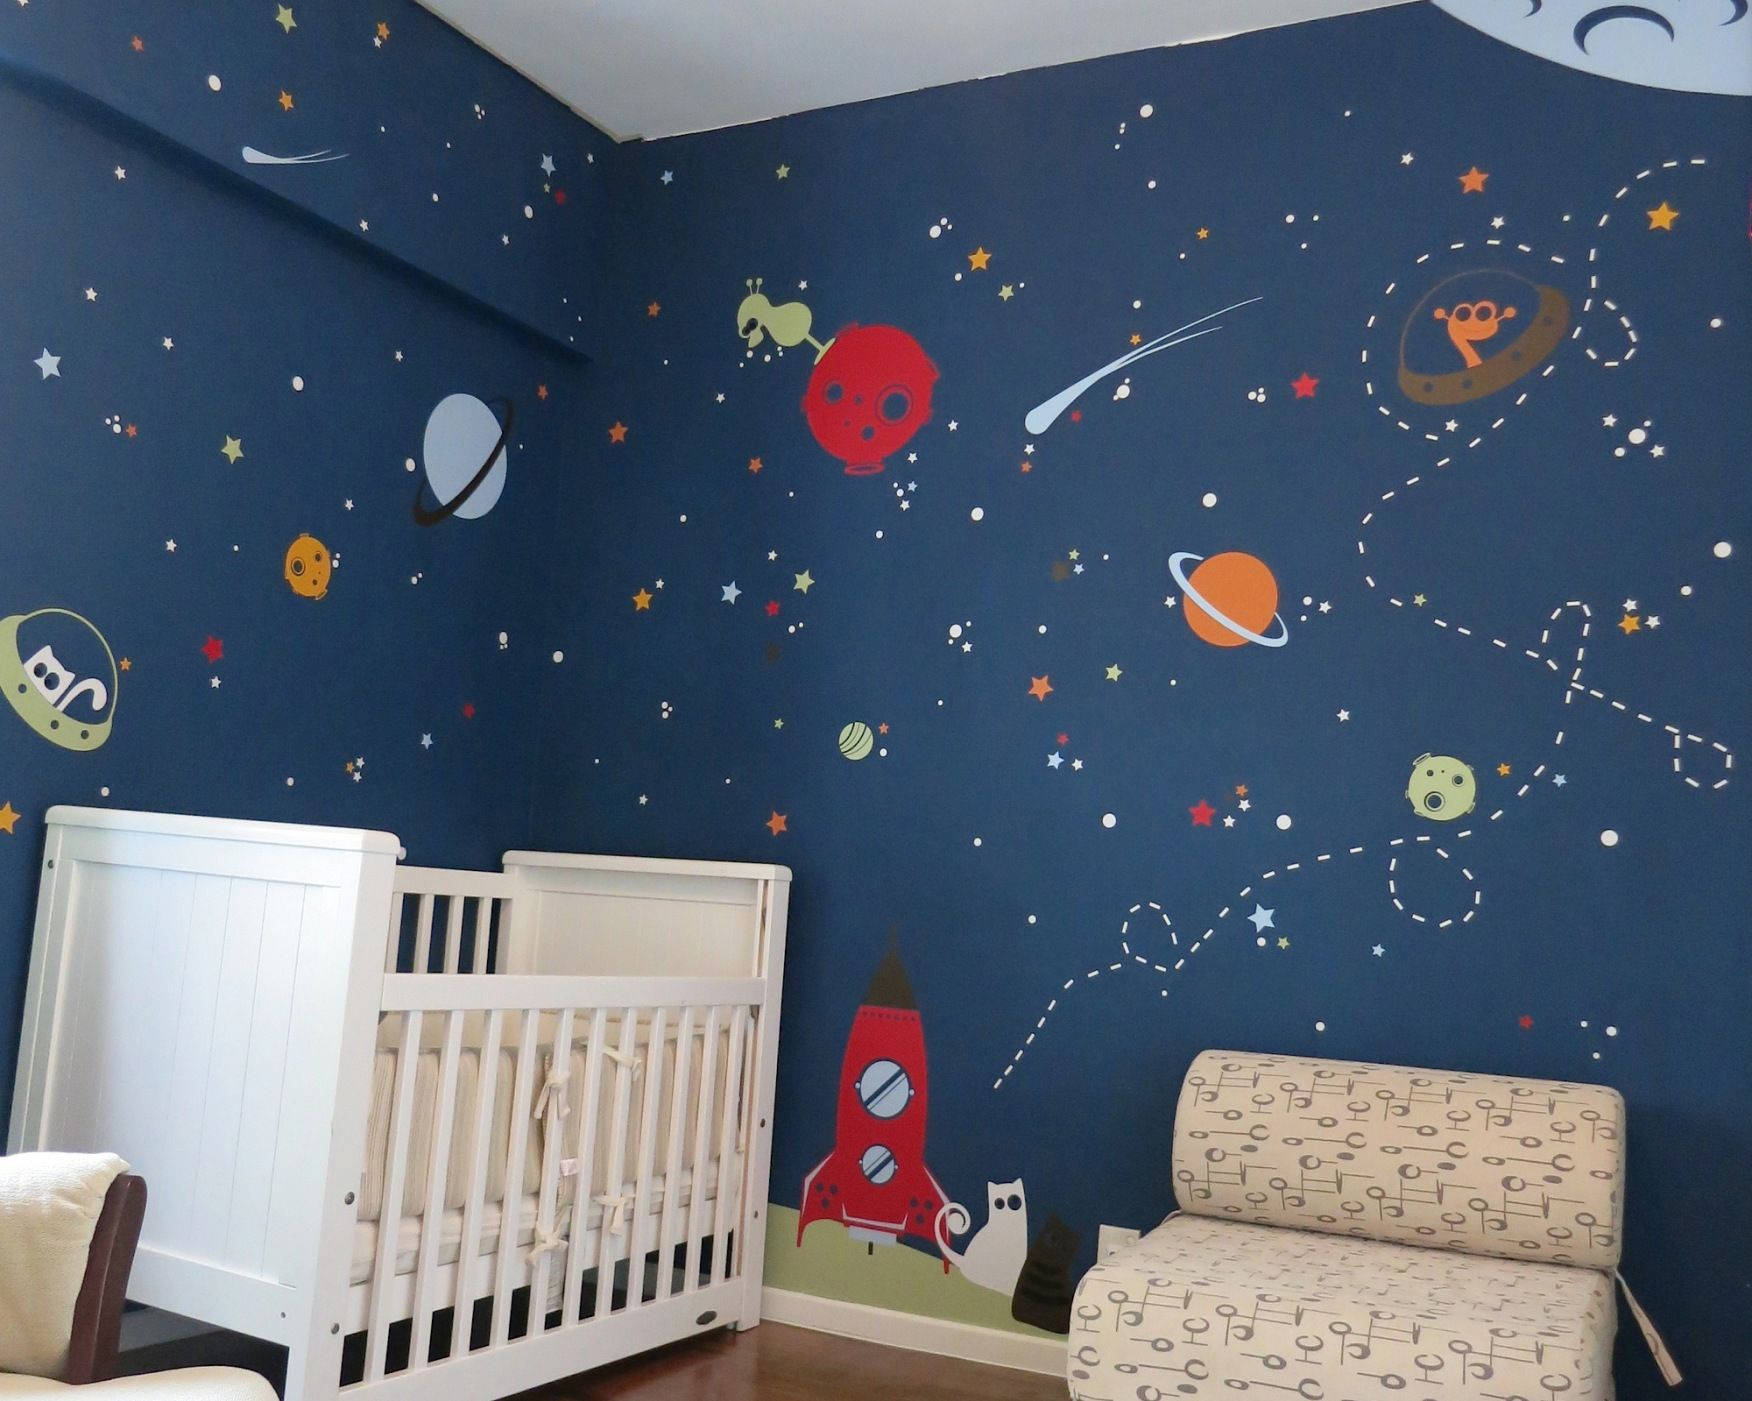 Give Your Rooms a Fresh Look this Spring with Wall Decals from